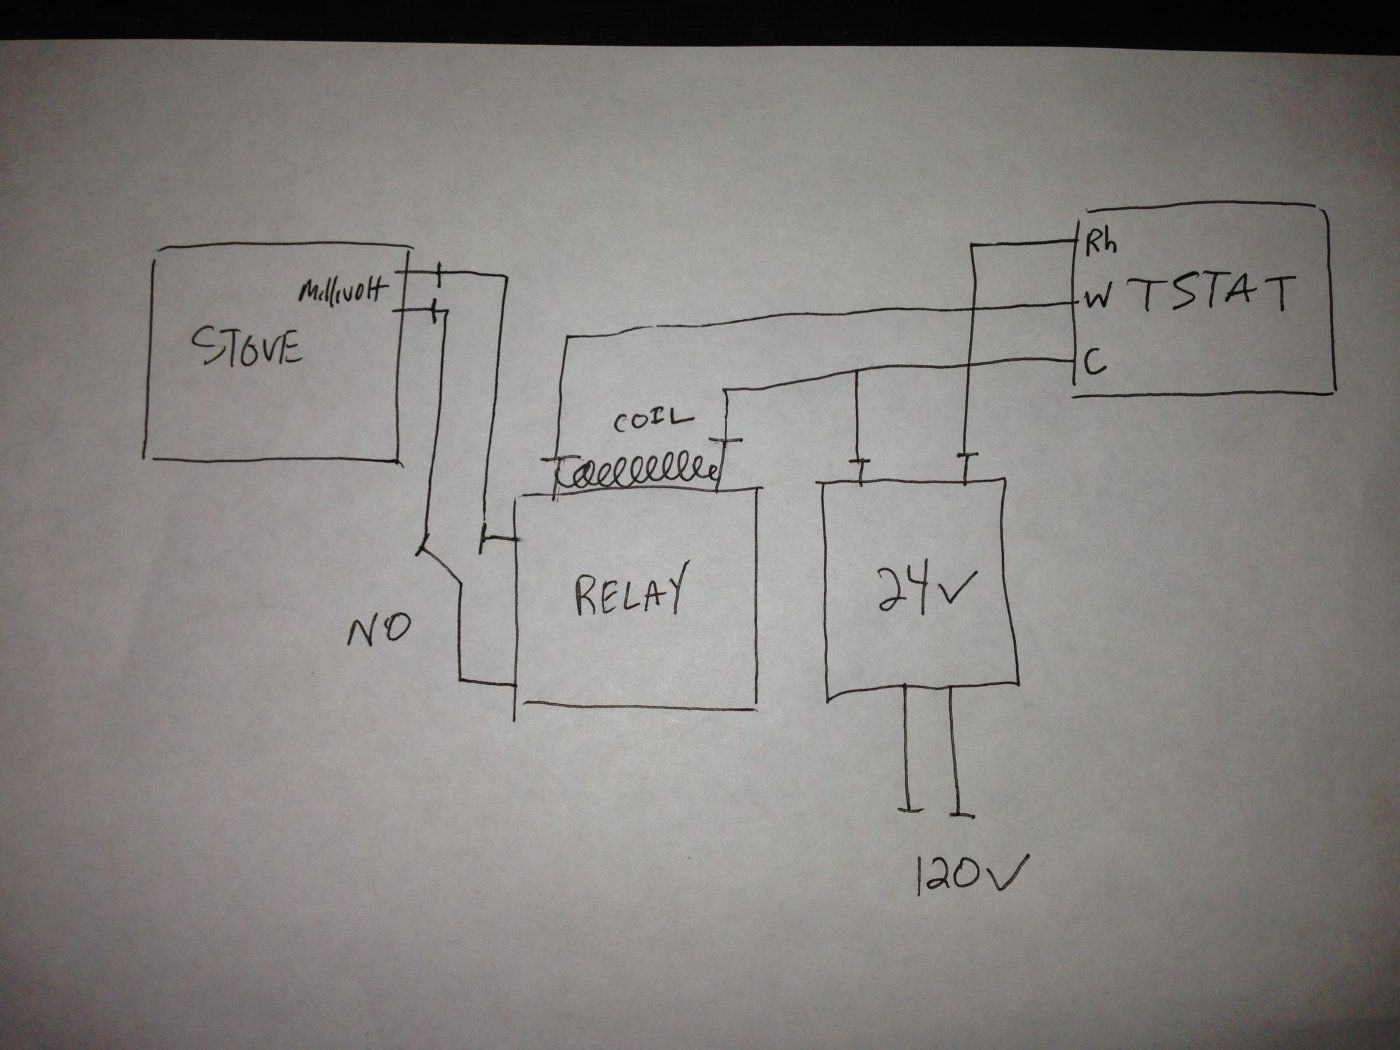 hight resolution of 24 volt relay wiring diagram how to wire a relay